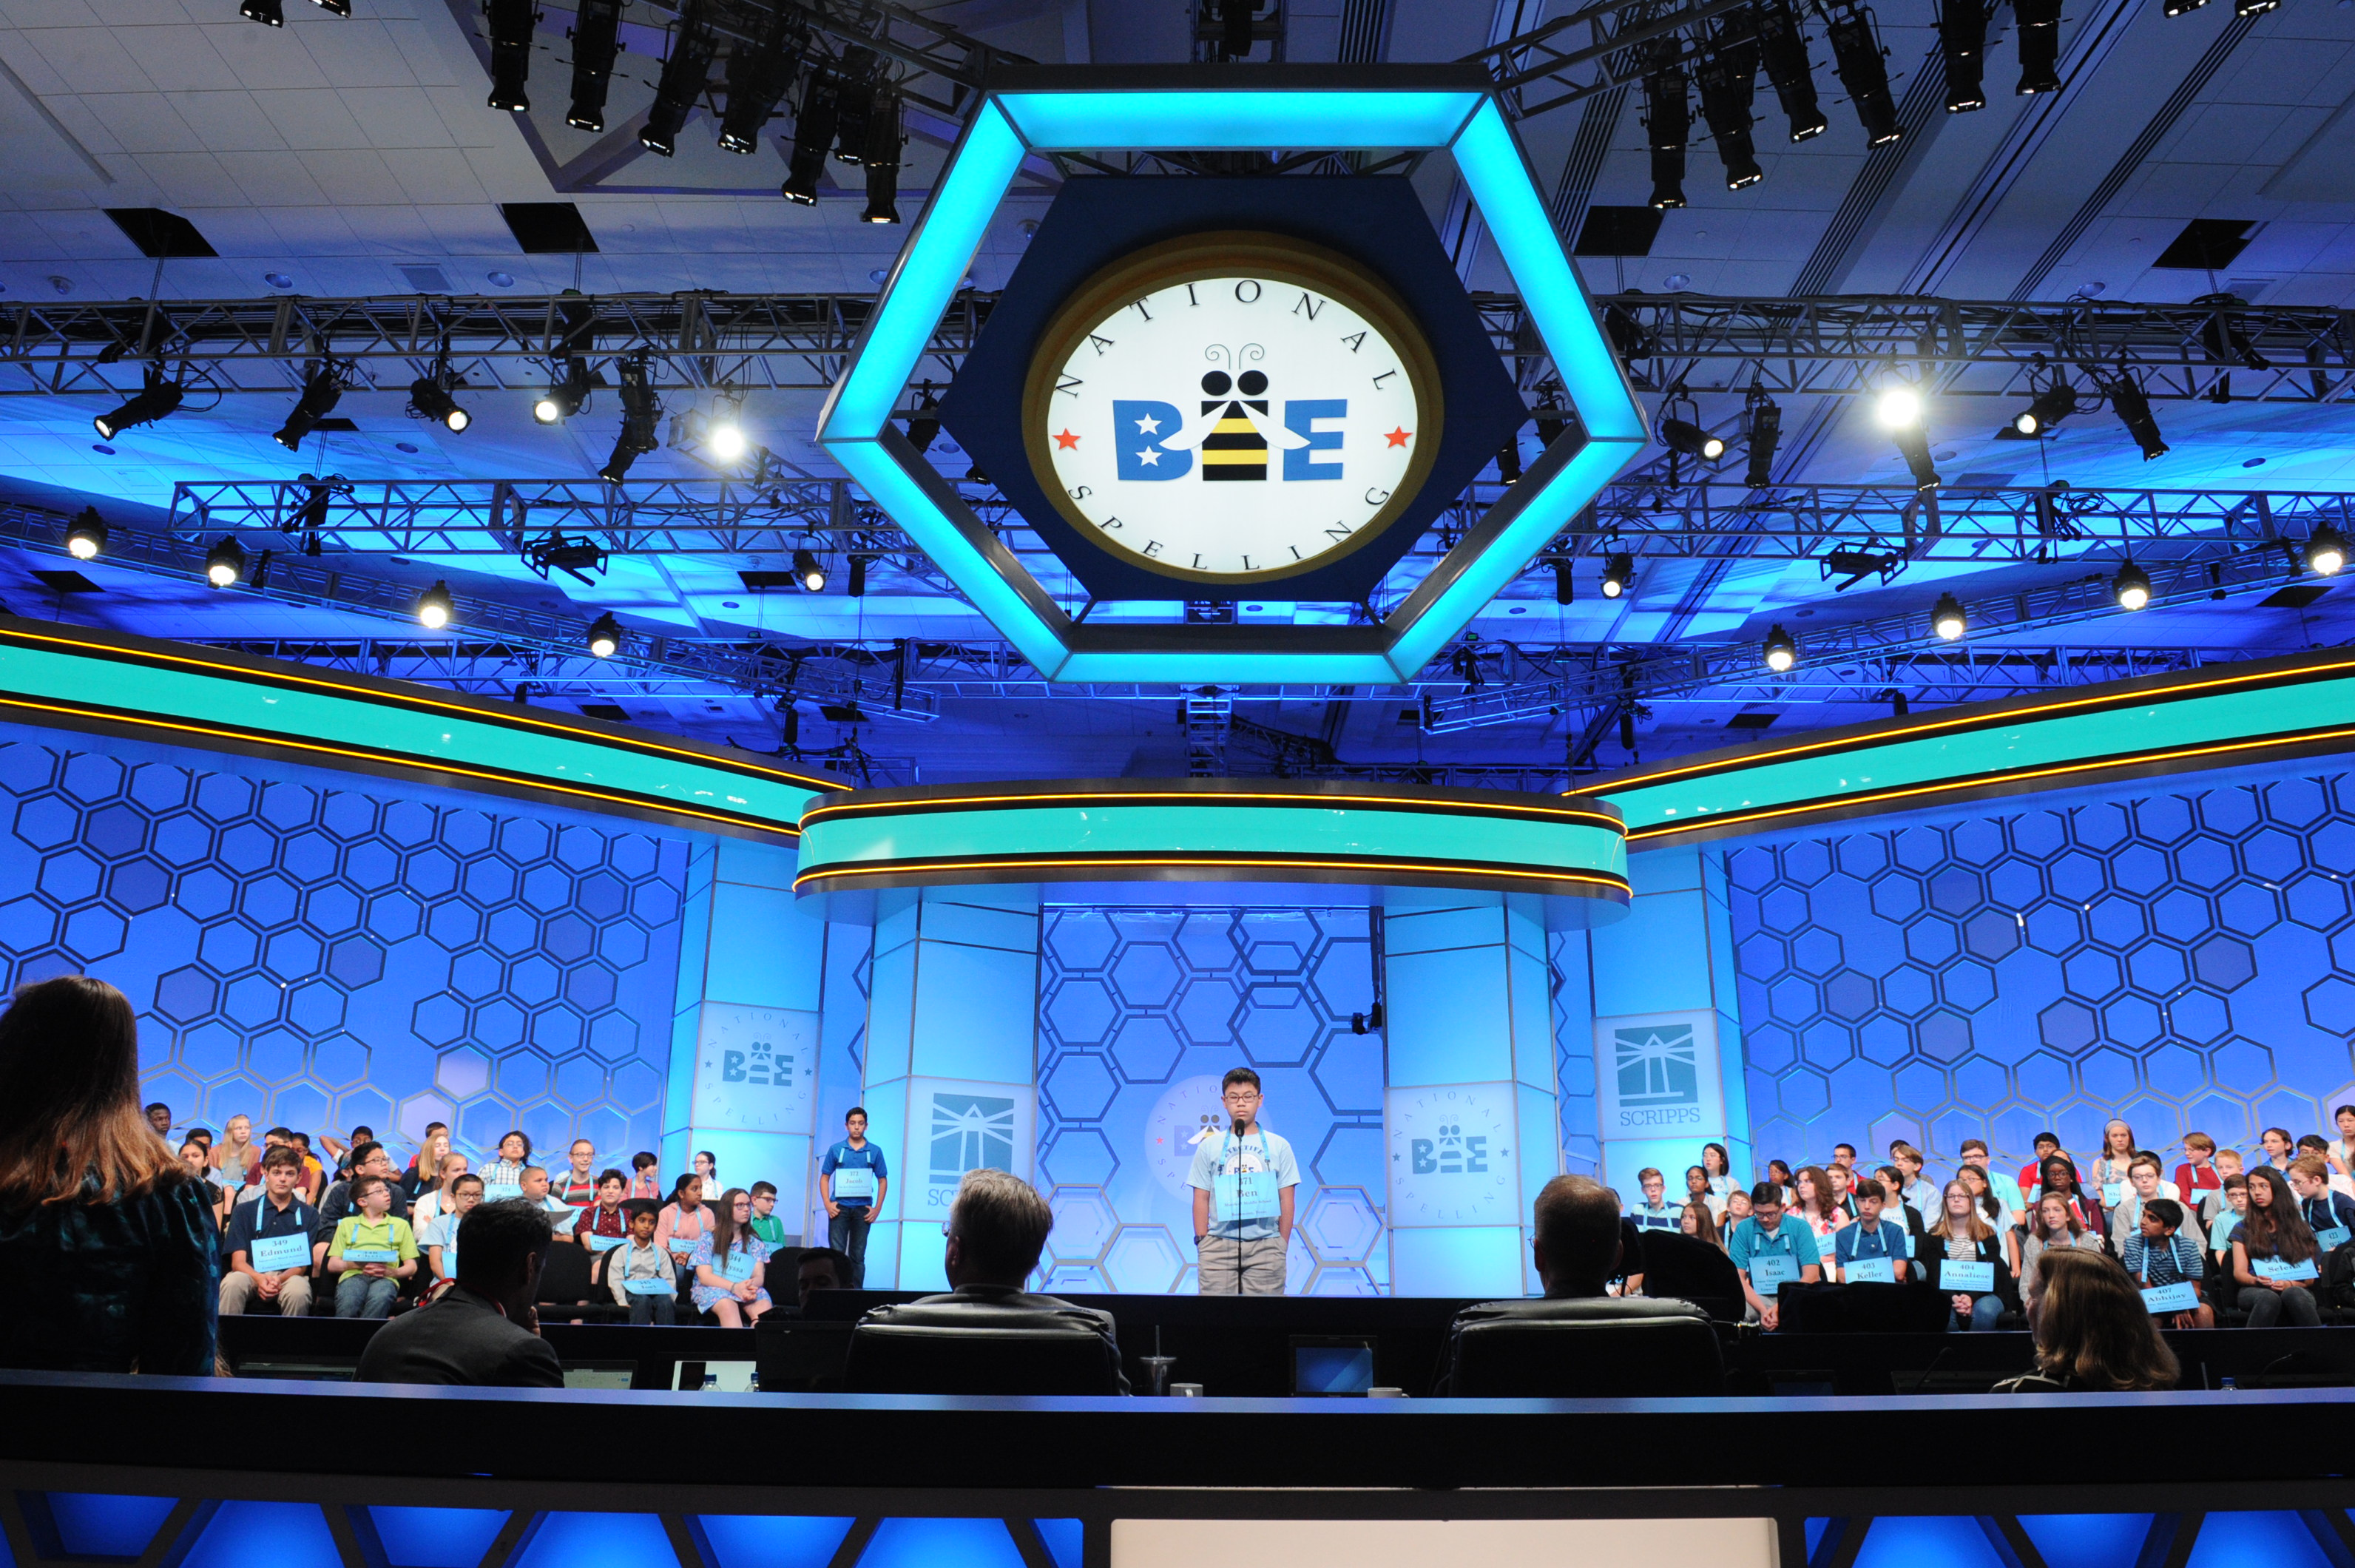 National Spelling Bee 2019: What time, TV channel is Scripps National Spelling Bee final?